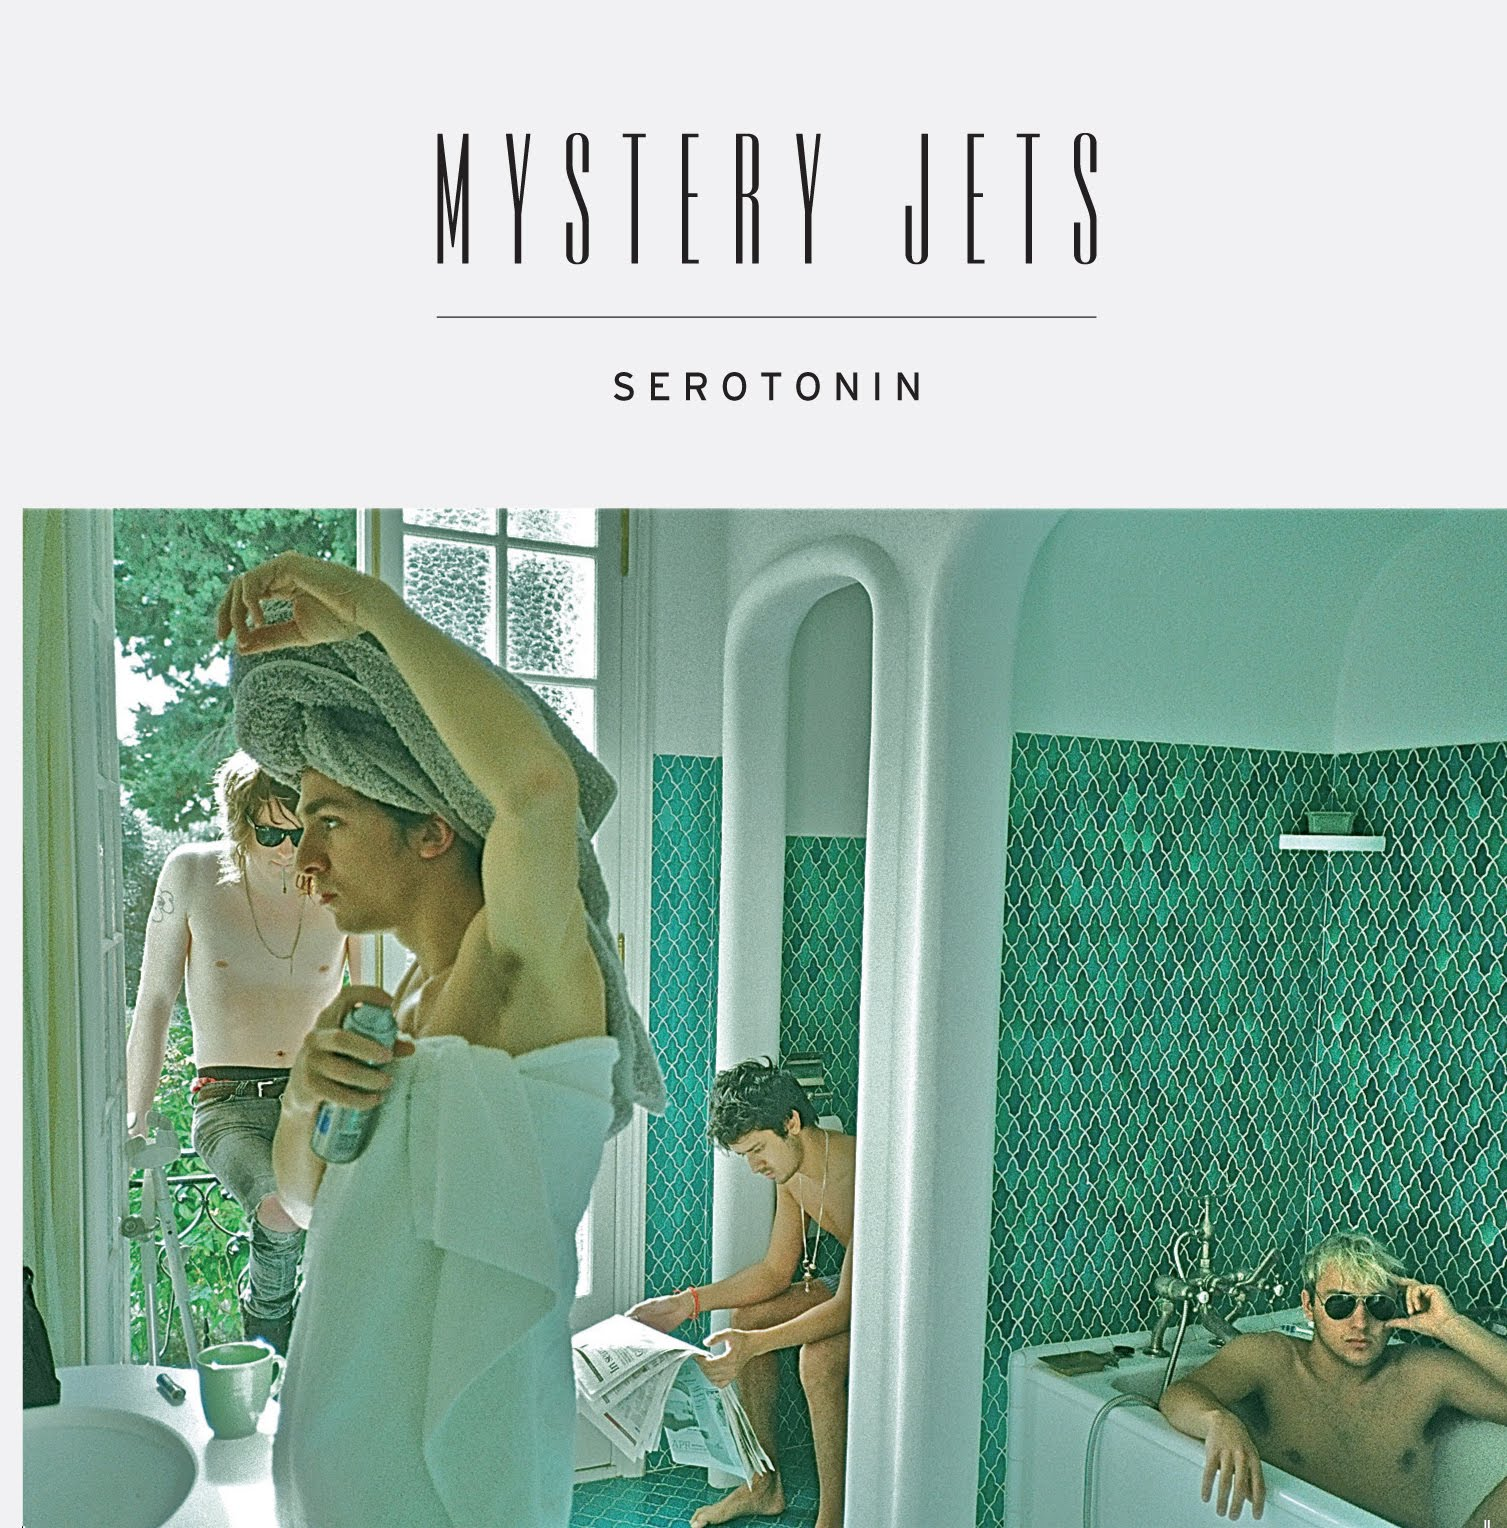 Mystery Jets are a band that